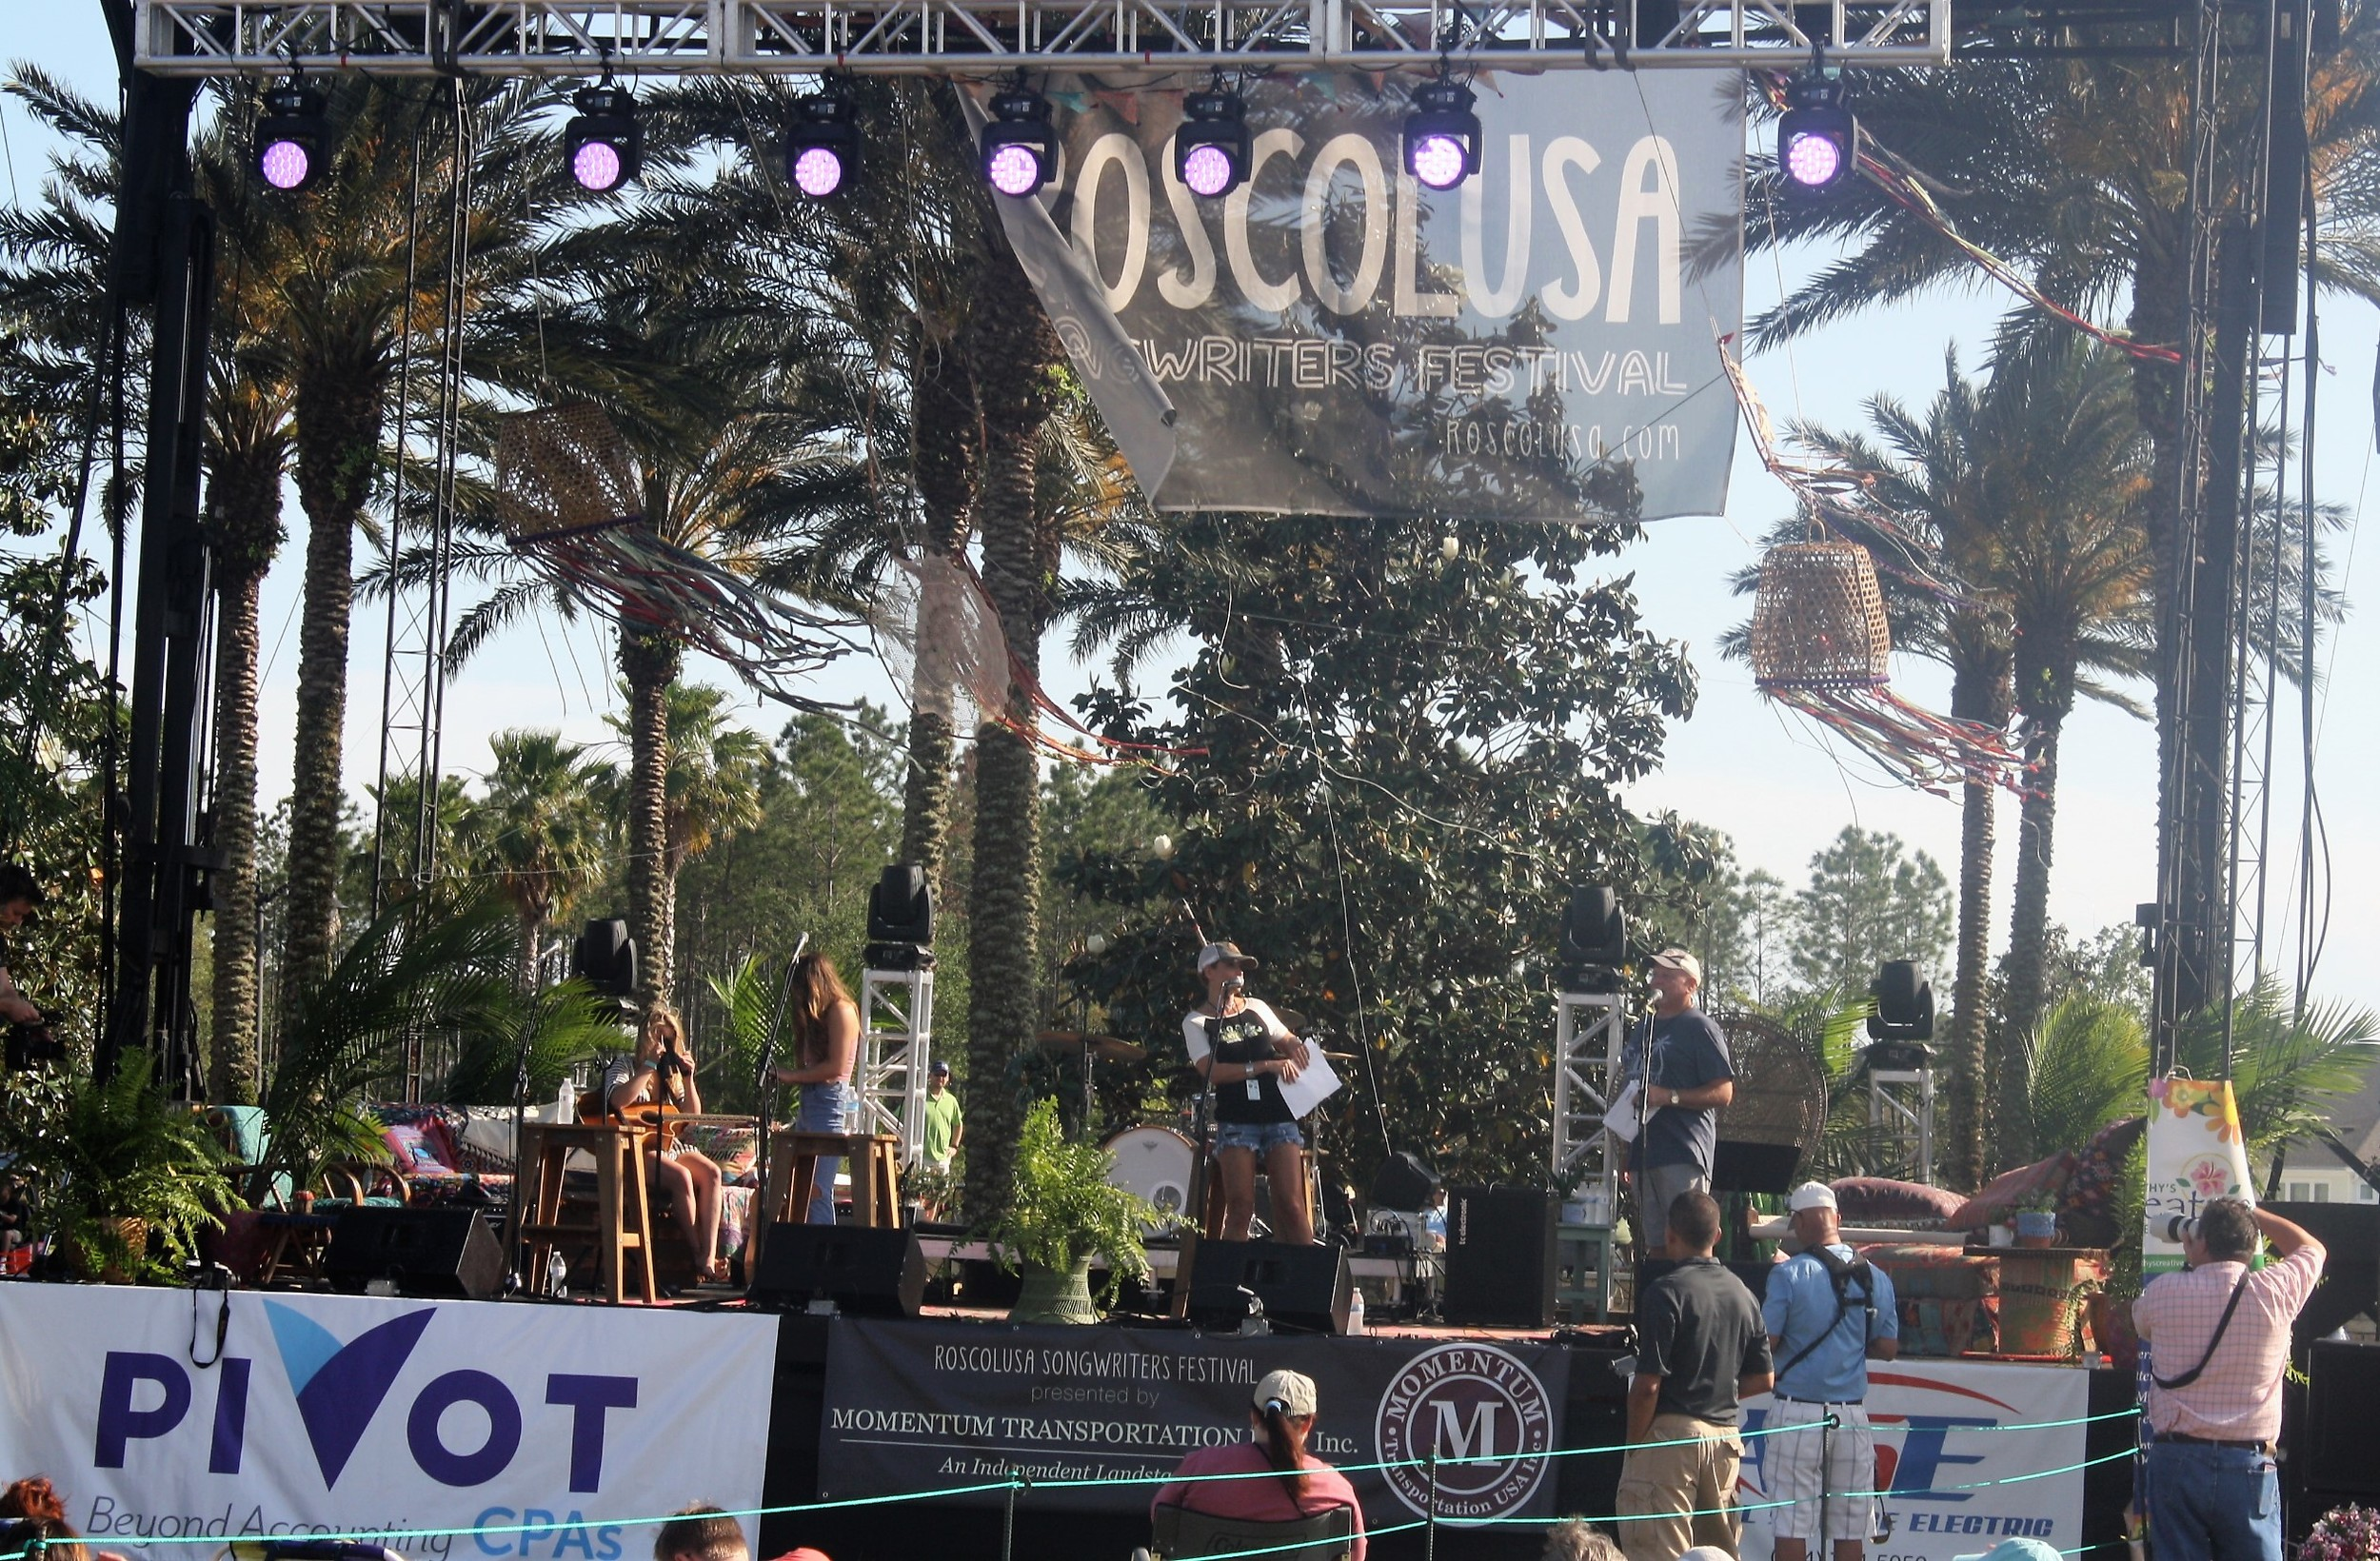 Gator Country DJ Eden Kendall welcomes attendees to the 6th Annual Roscolusa Songwriters Festival.